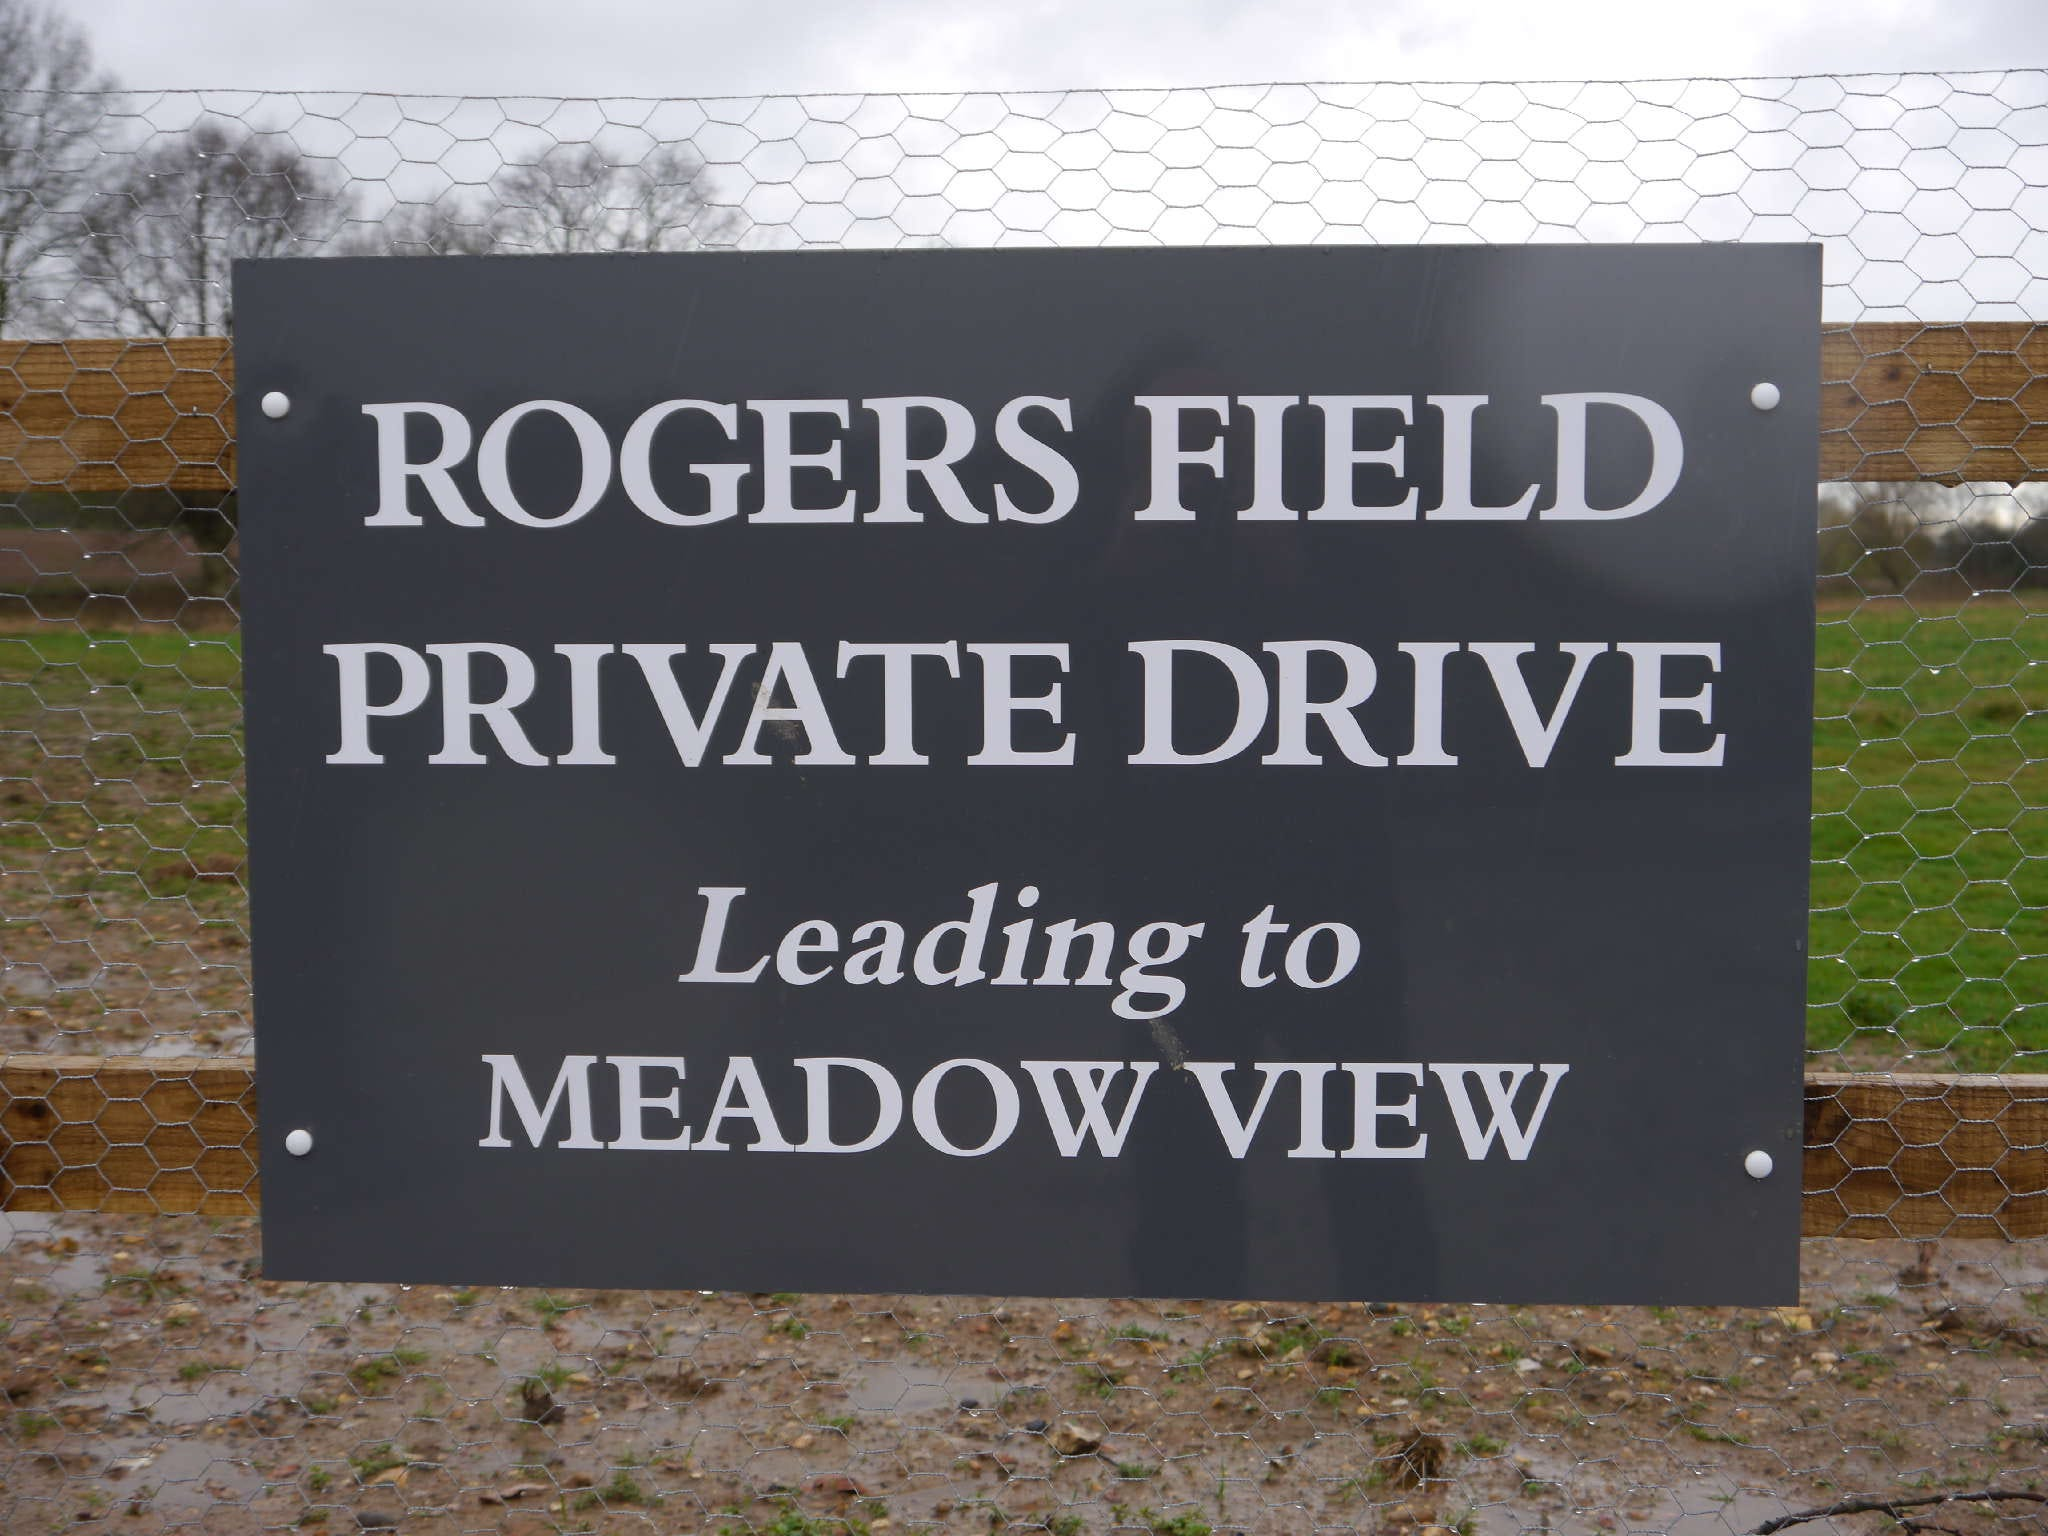 Rogers Field Private Drive